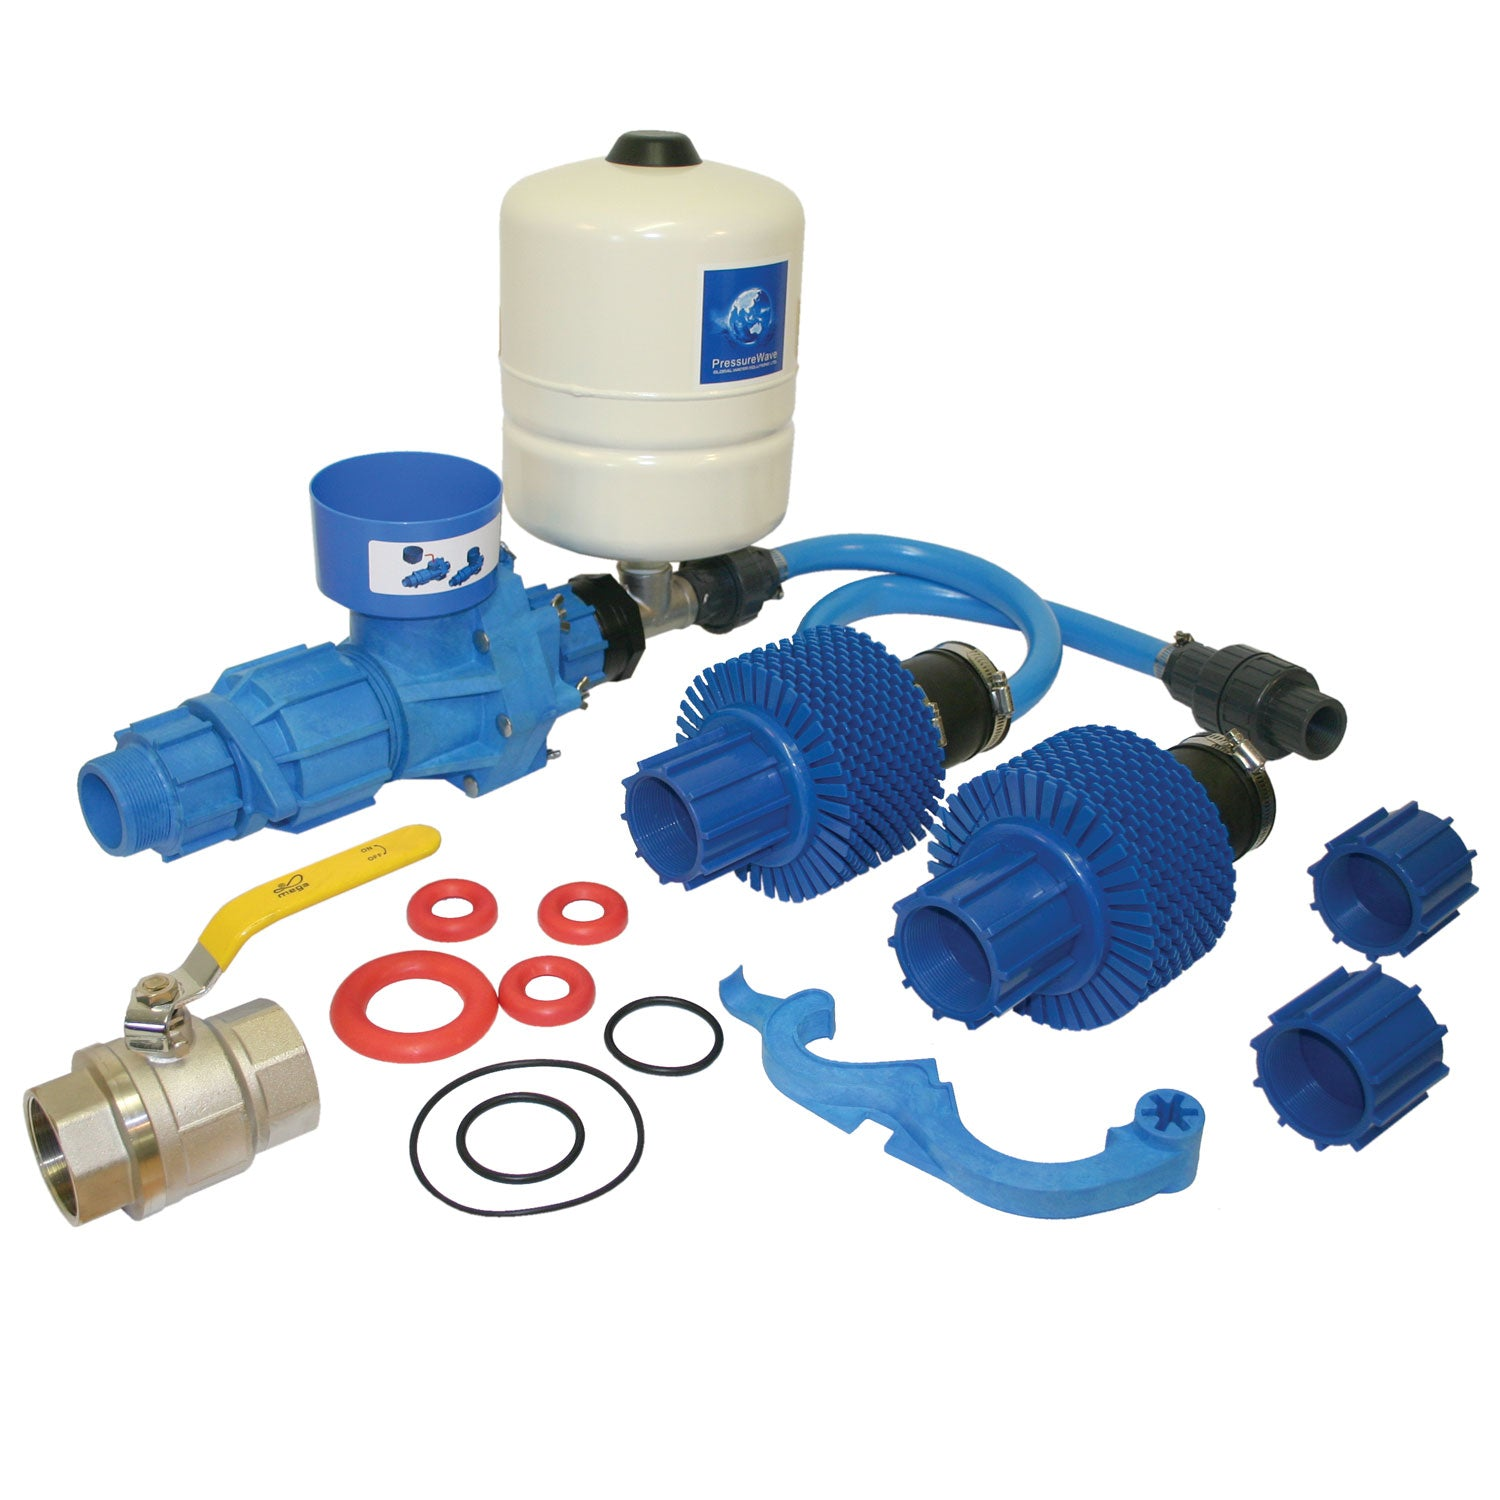 "2"" Composite Papa Pump Kit - for delivery pressures up to 10 bar"